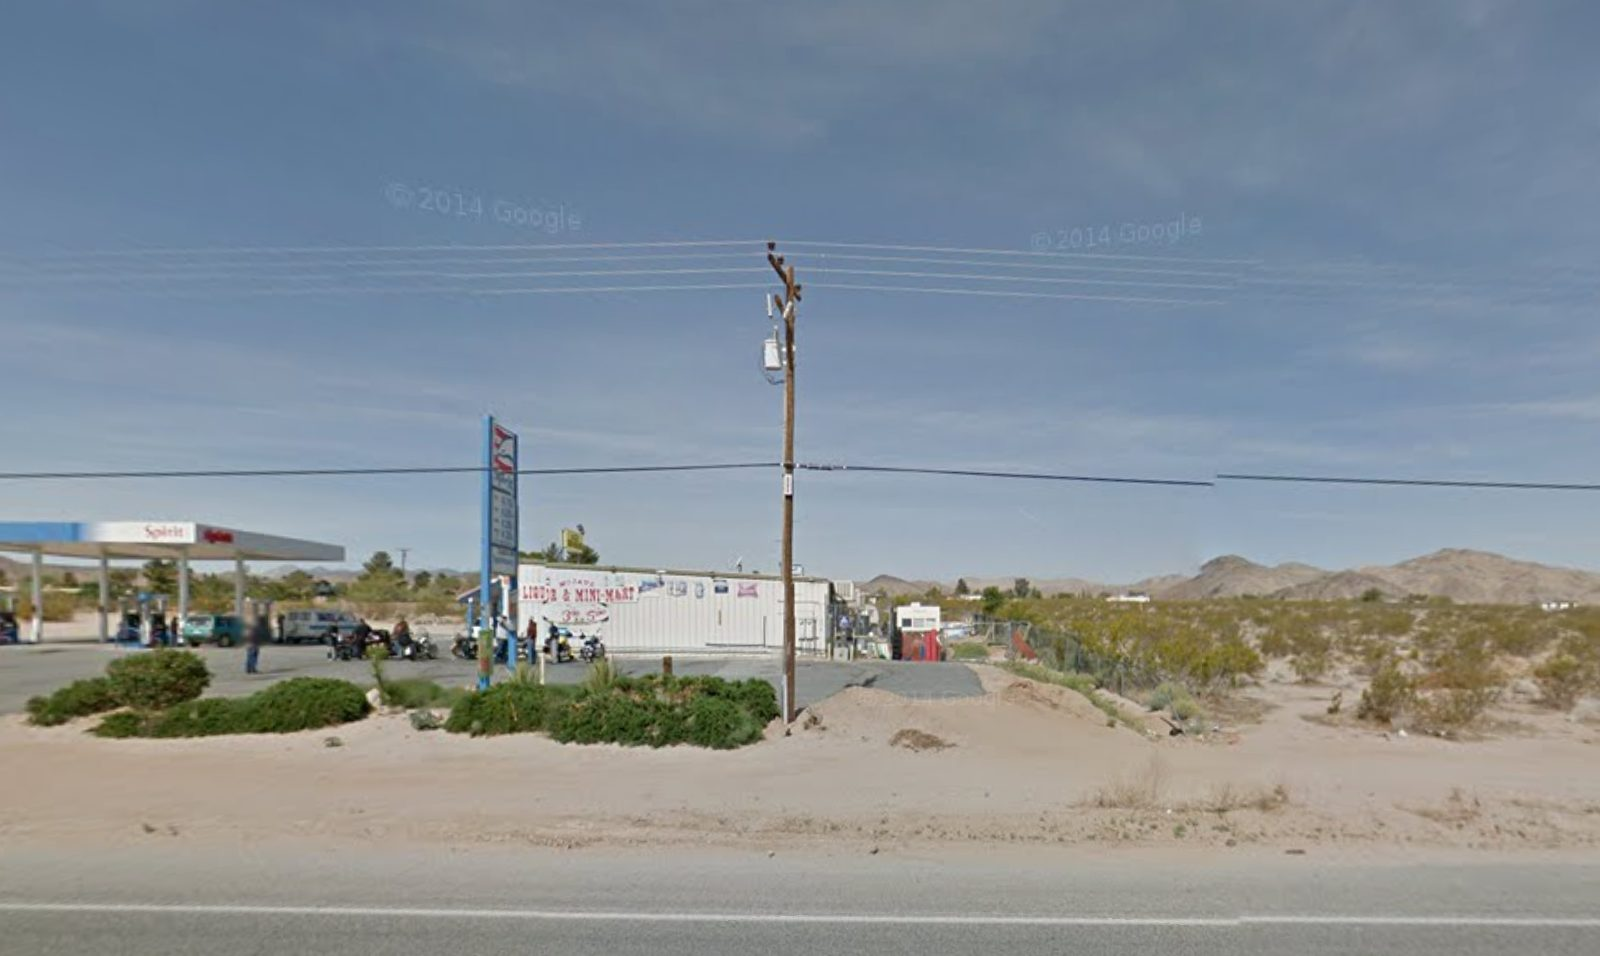 (Mojave Market as seen on Google Maps)